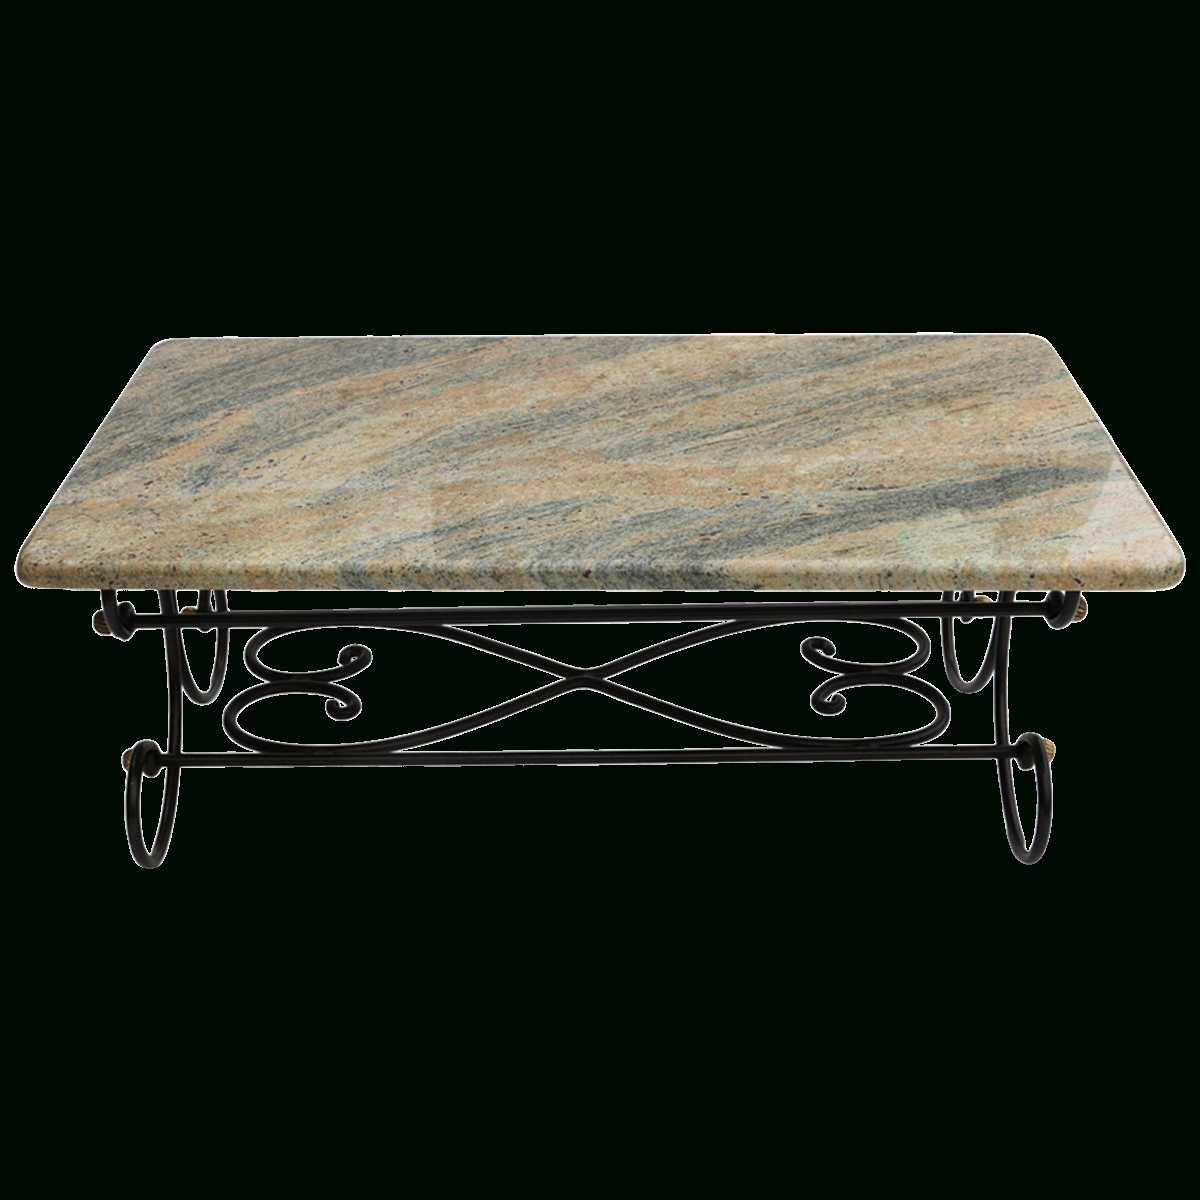 Viyet - Designer Furniture - Tables - Vintage Wrought Iron And for Wrought Iron Coffee Tables (Image 18 of 30)